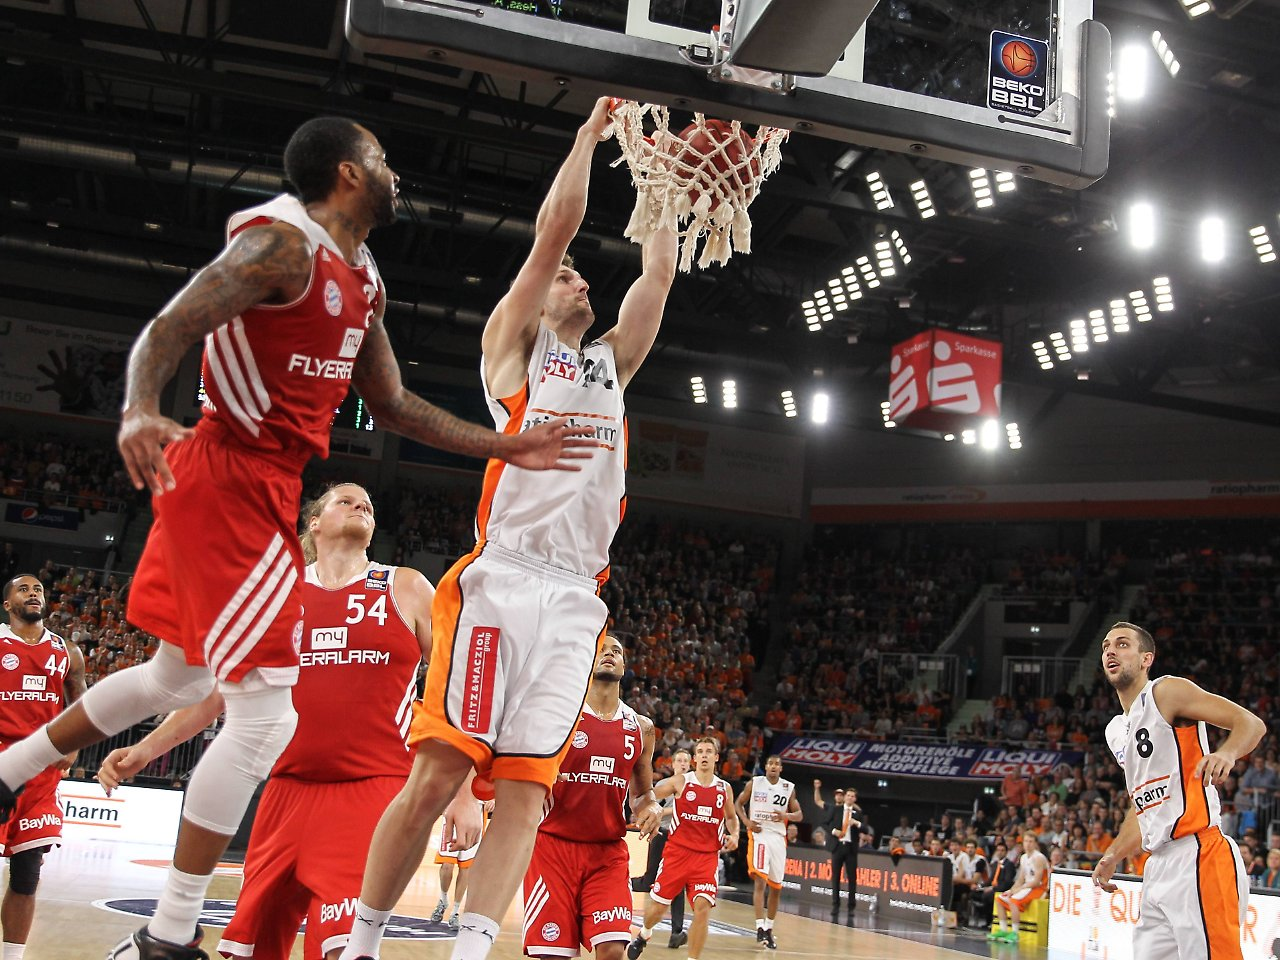 Airball, Dunk, Steal: Das Basketball-ABC - n-tv.de